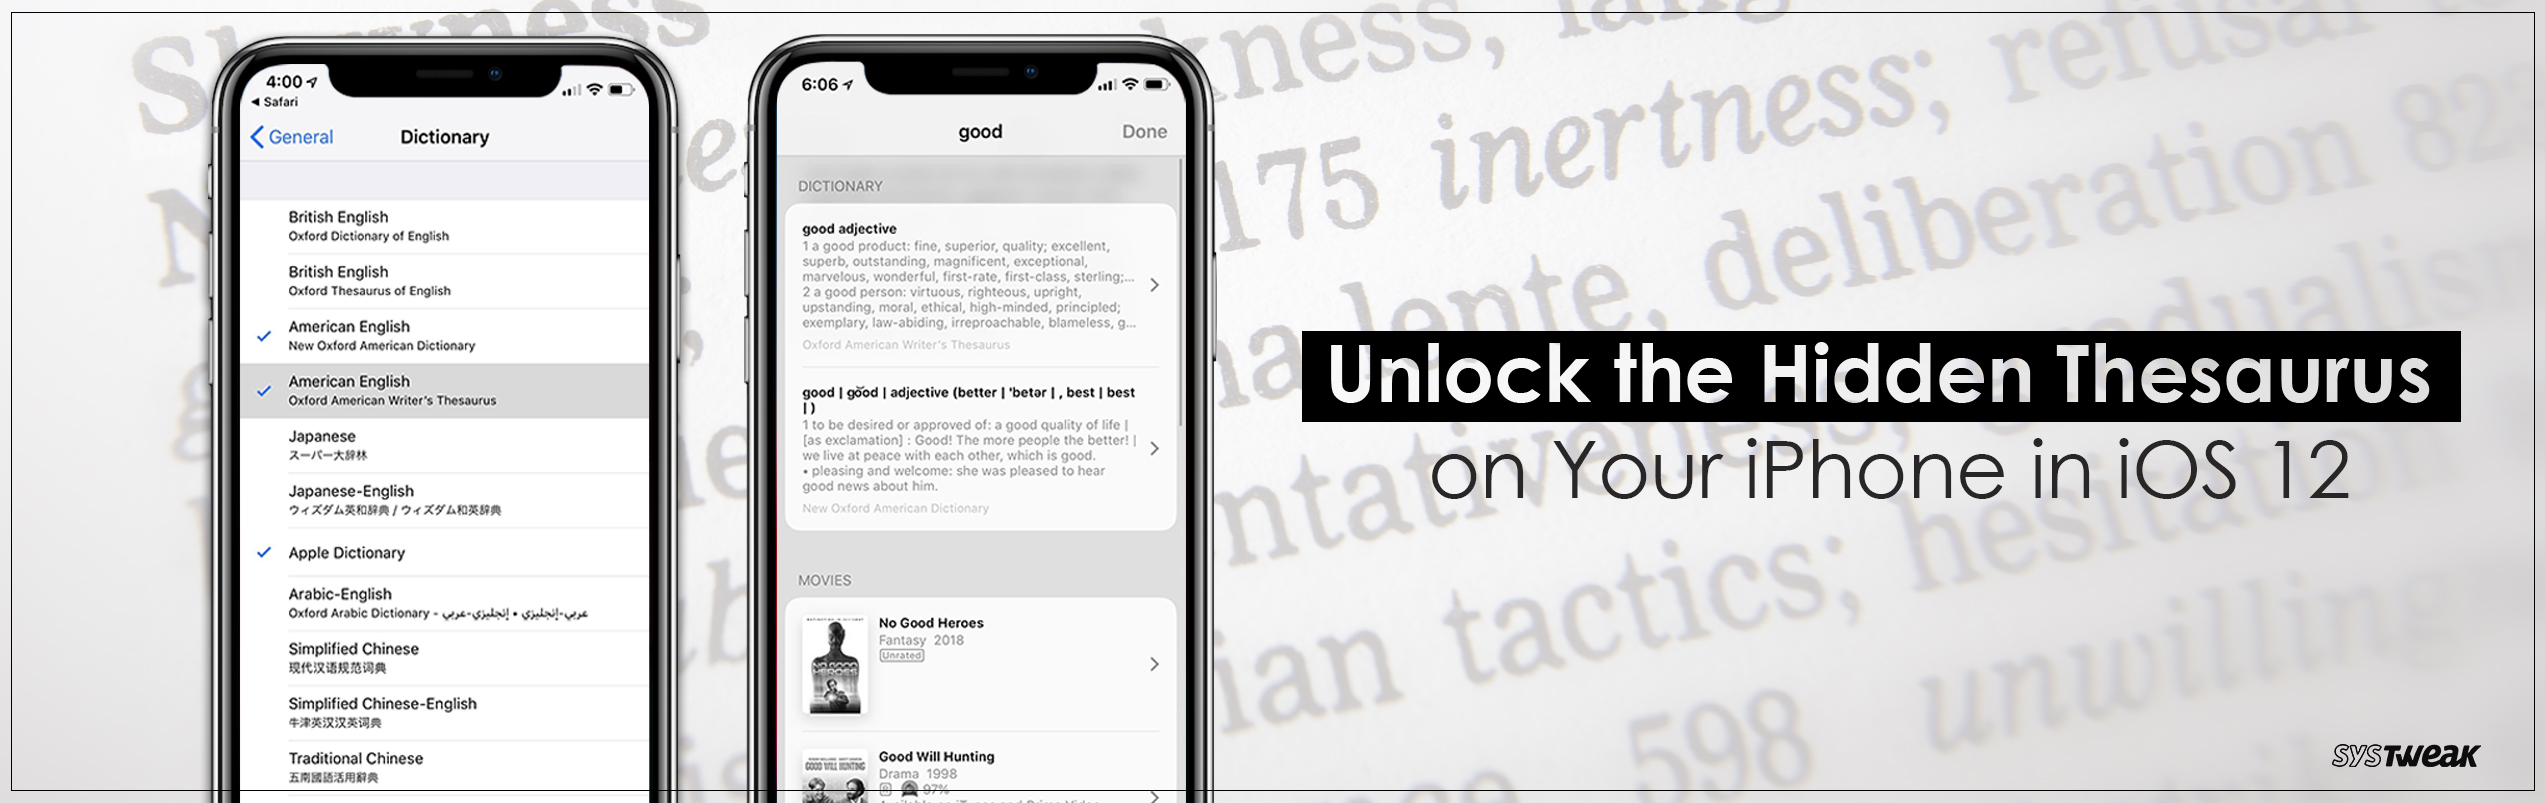 How To Unlock The Hidden Thesaurus On Your iPhone in iOS 12?